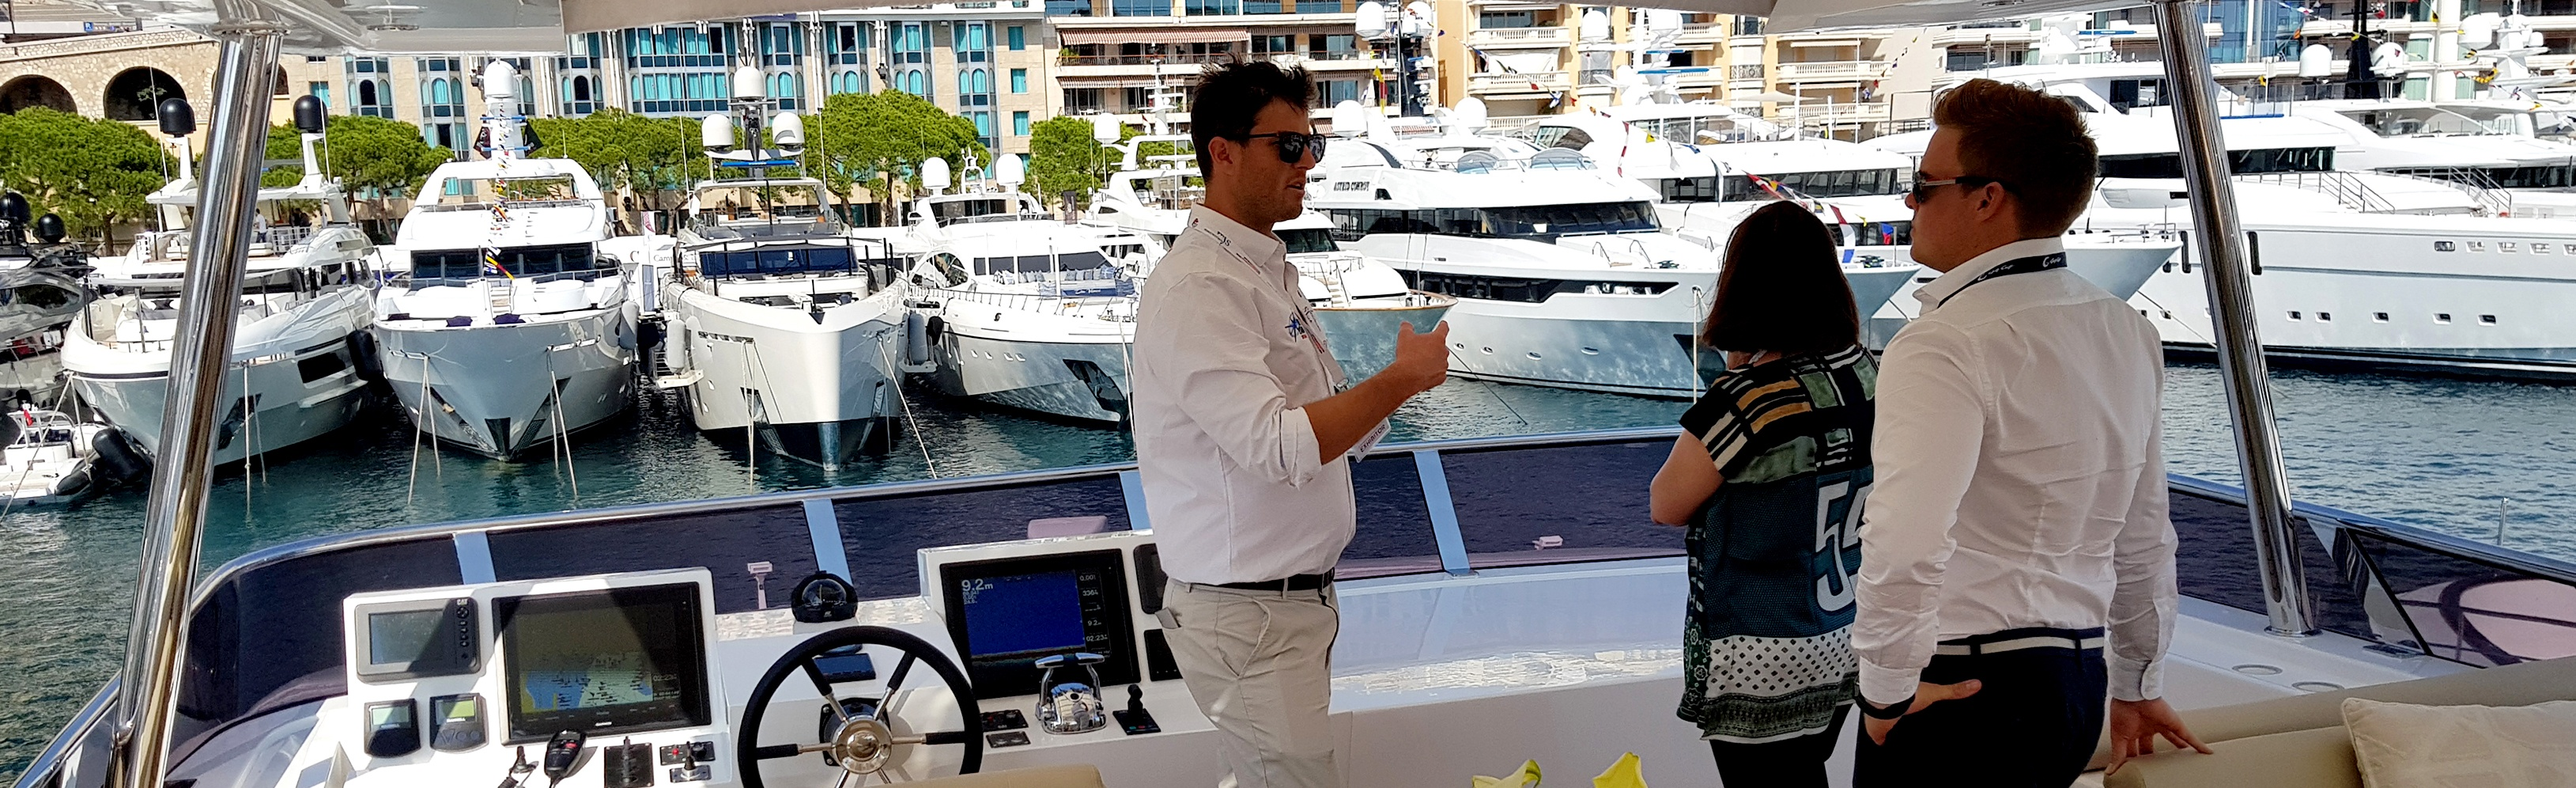 Gulf-Craft-at-the-Monaco-Yacht-Show-2017-Day-2.jpg